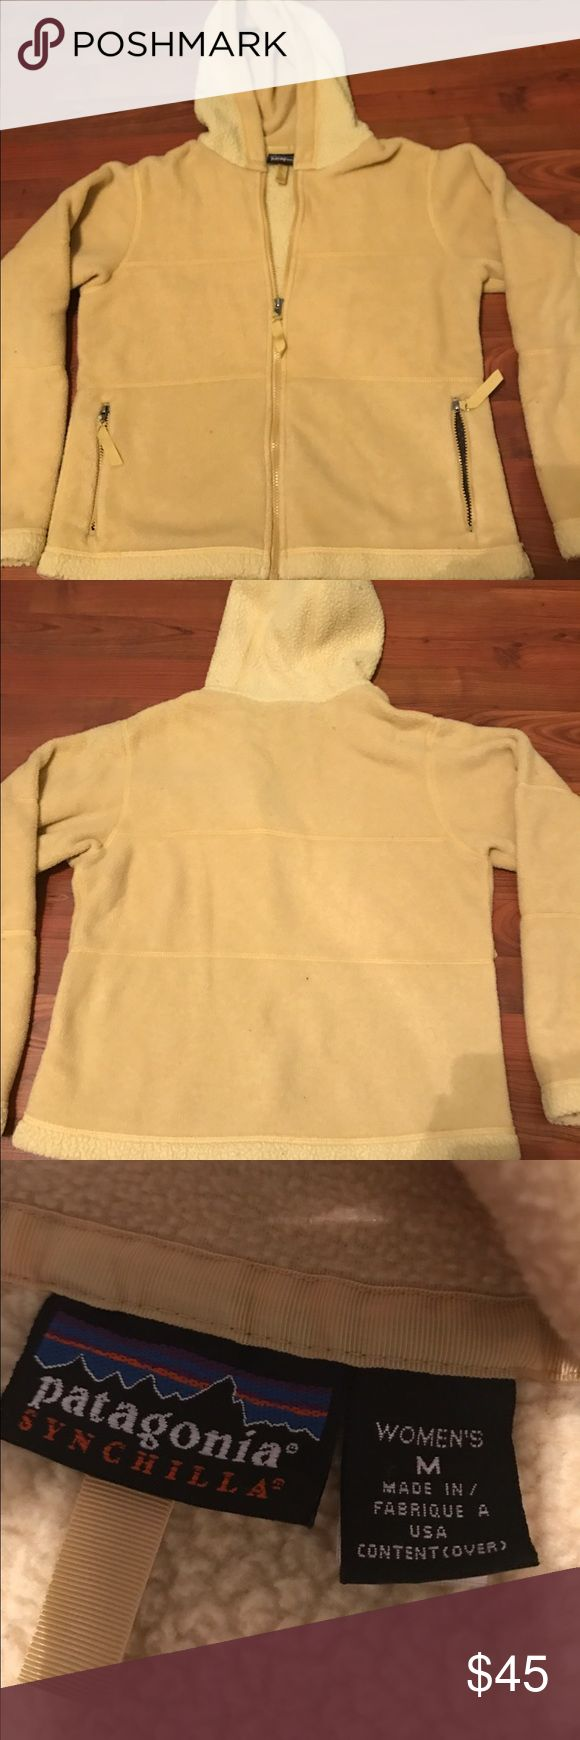 Patagonia Zip-Up Synchilla Fleece Jacket Mustard yellow fleece with hood. Women's M. Patagonia Jackets & Coats